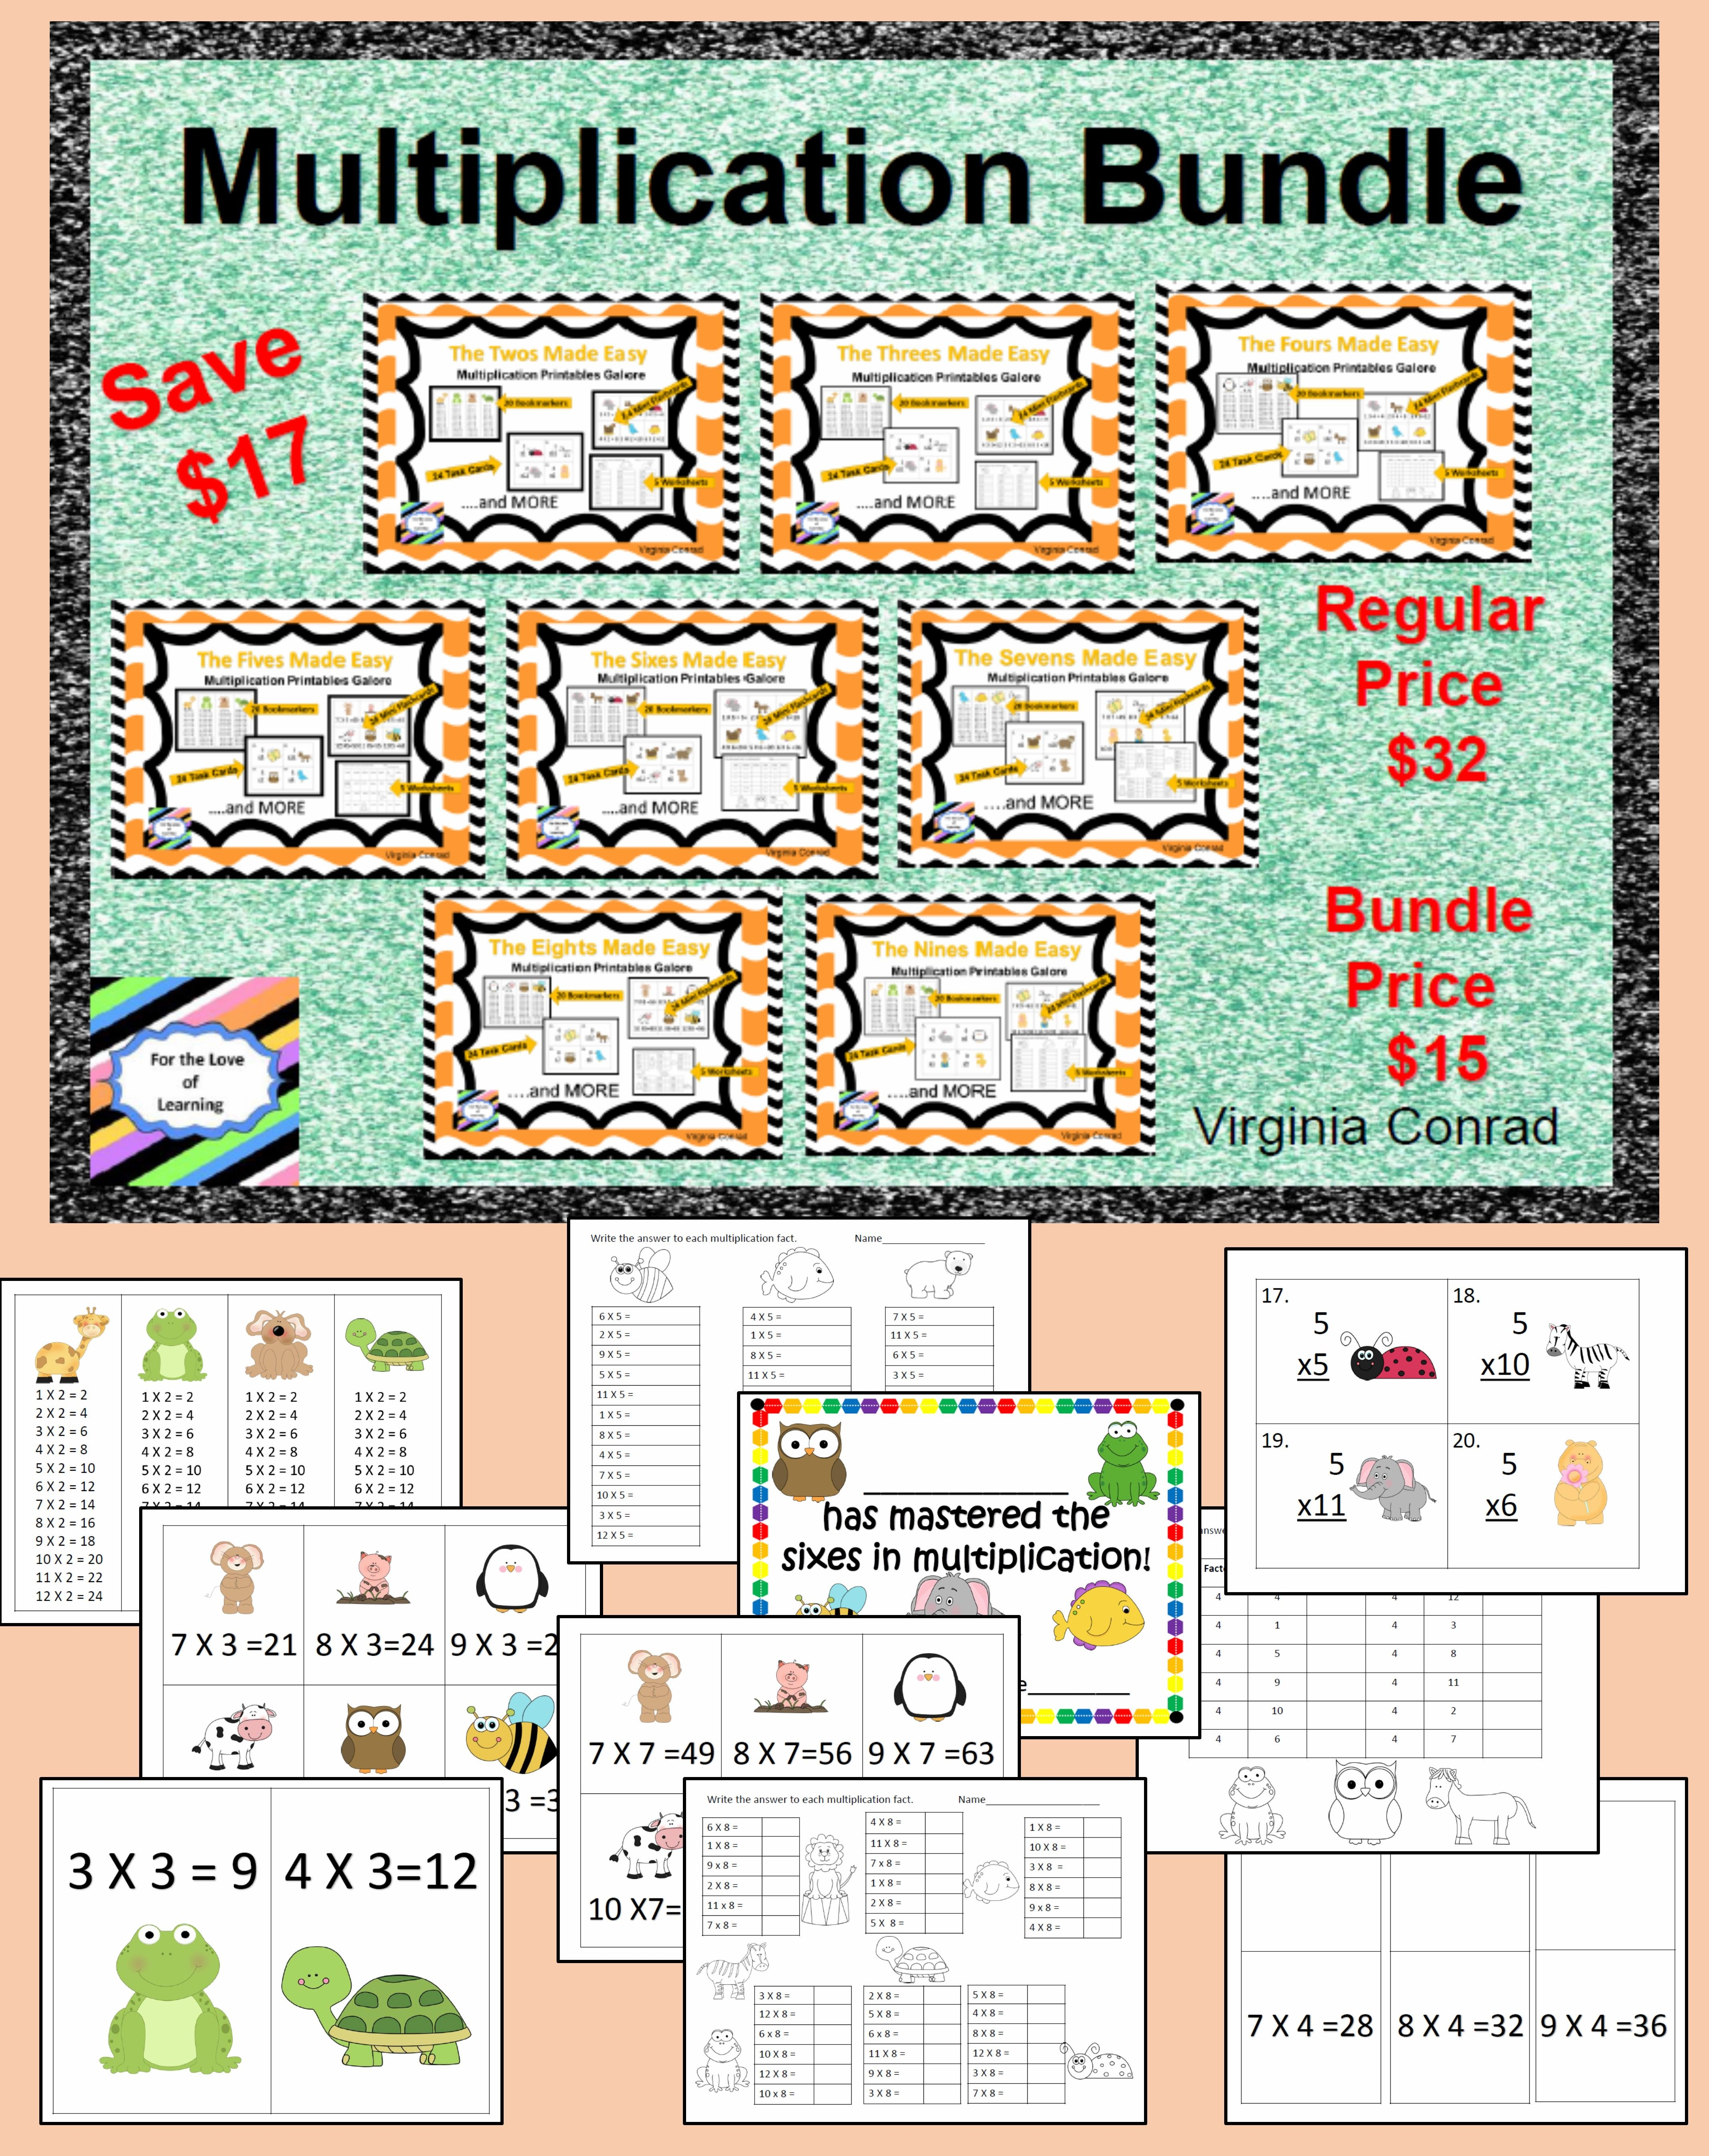 Multiplication Bundle Printables Galore For The Twos